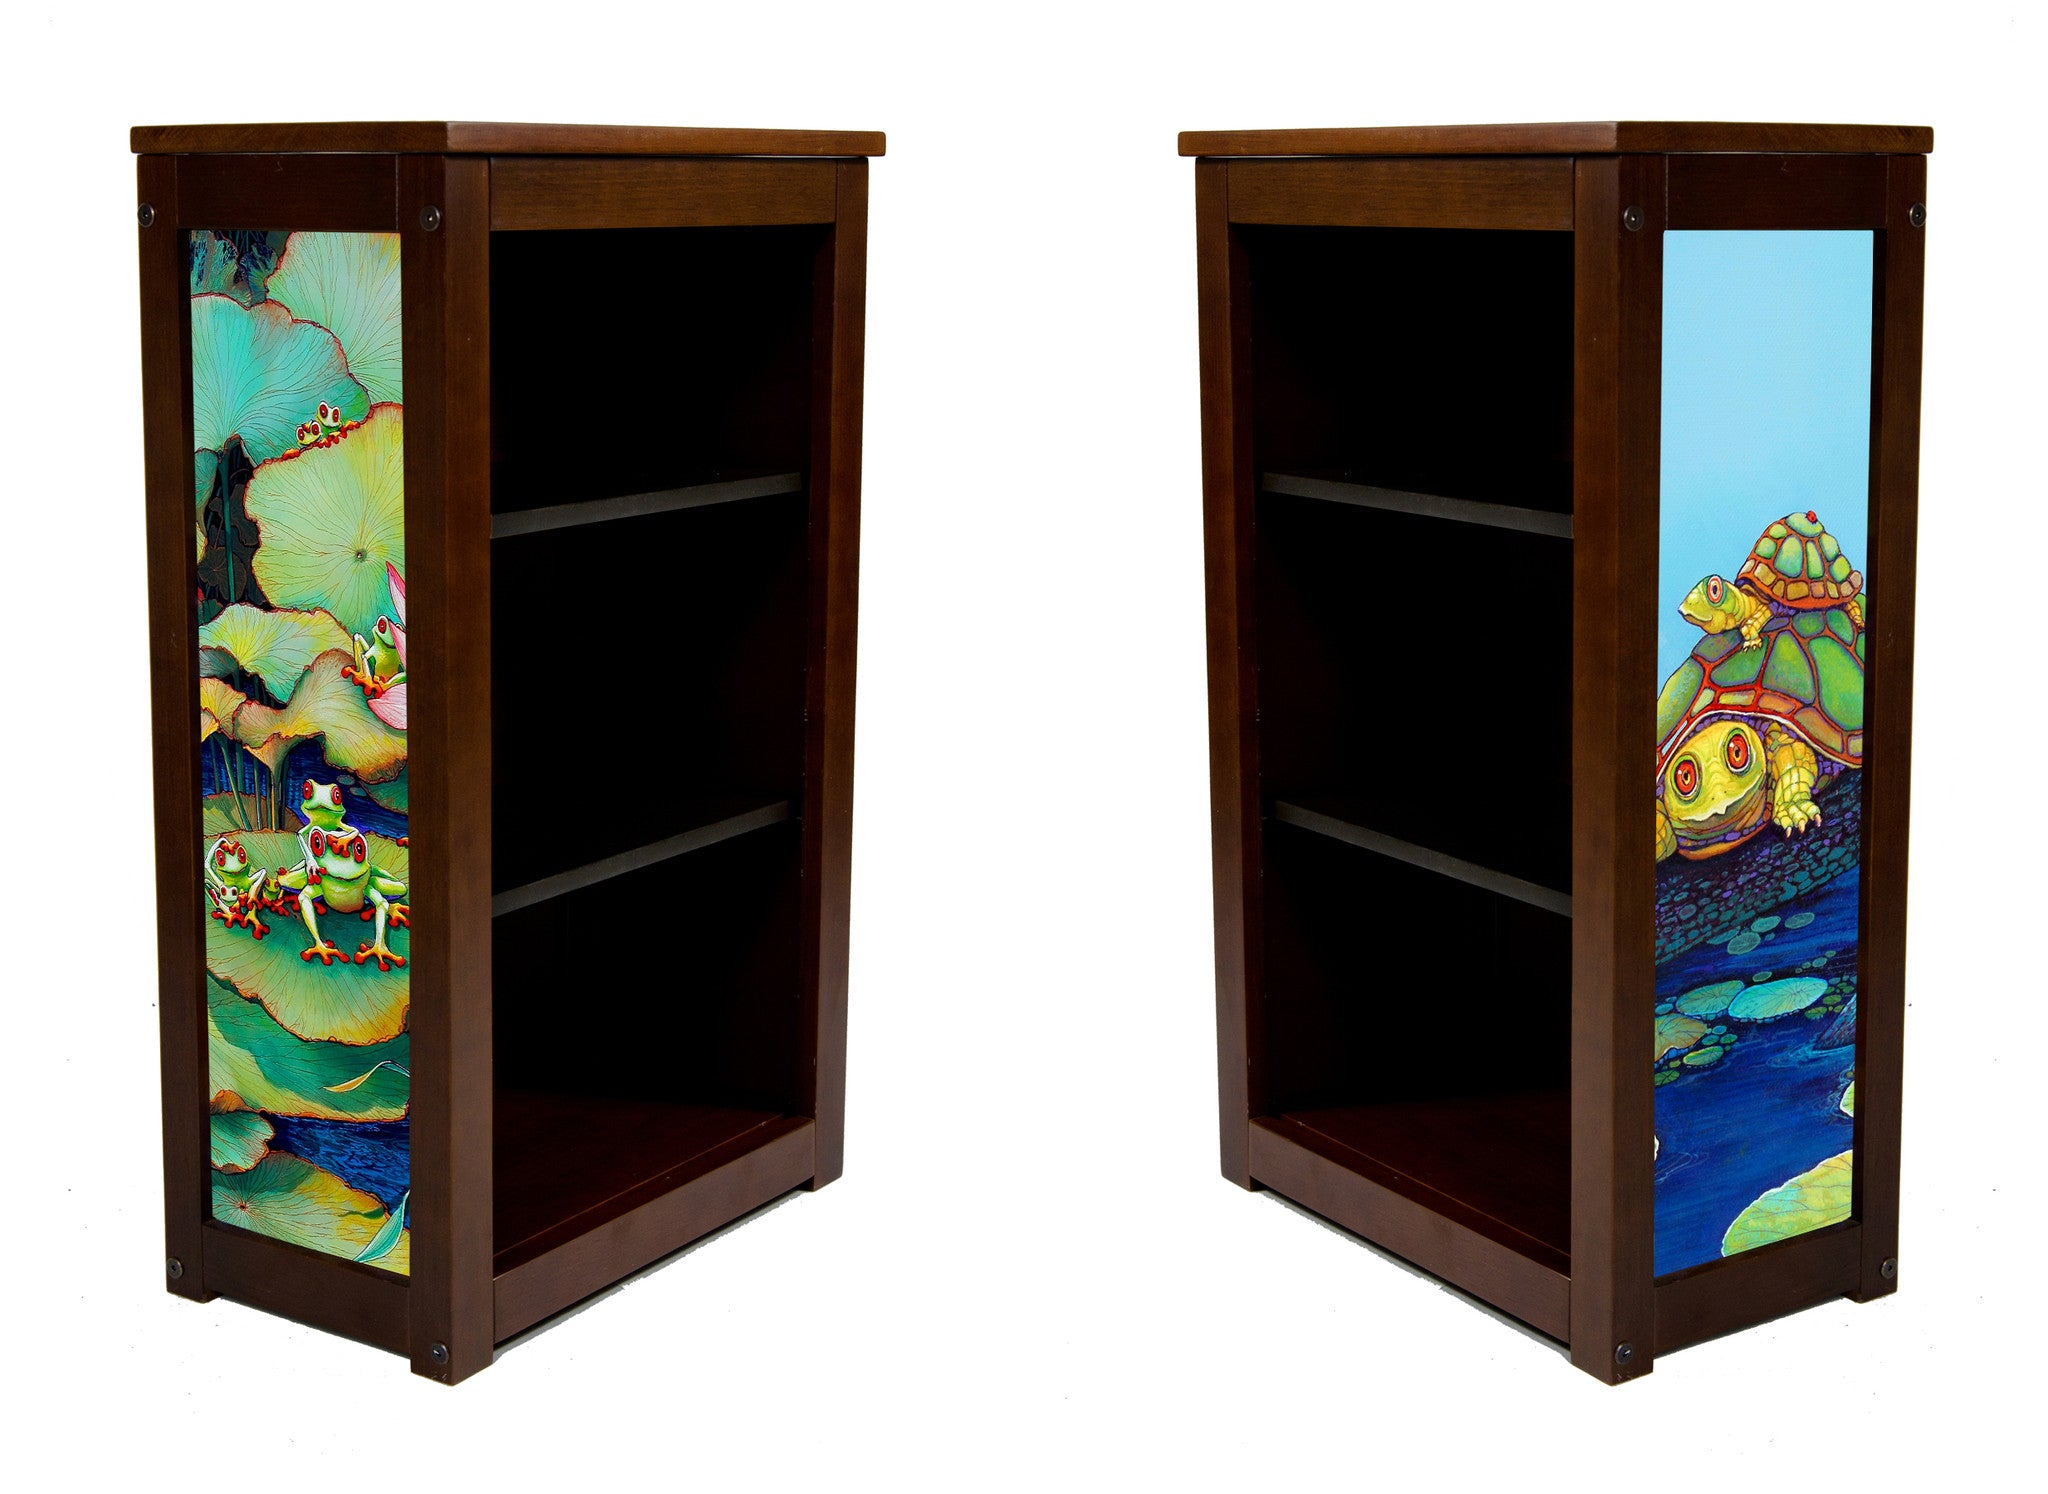 Frog Theme Book Cabinet called Party on the Pad by Lary McKee